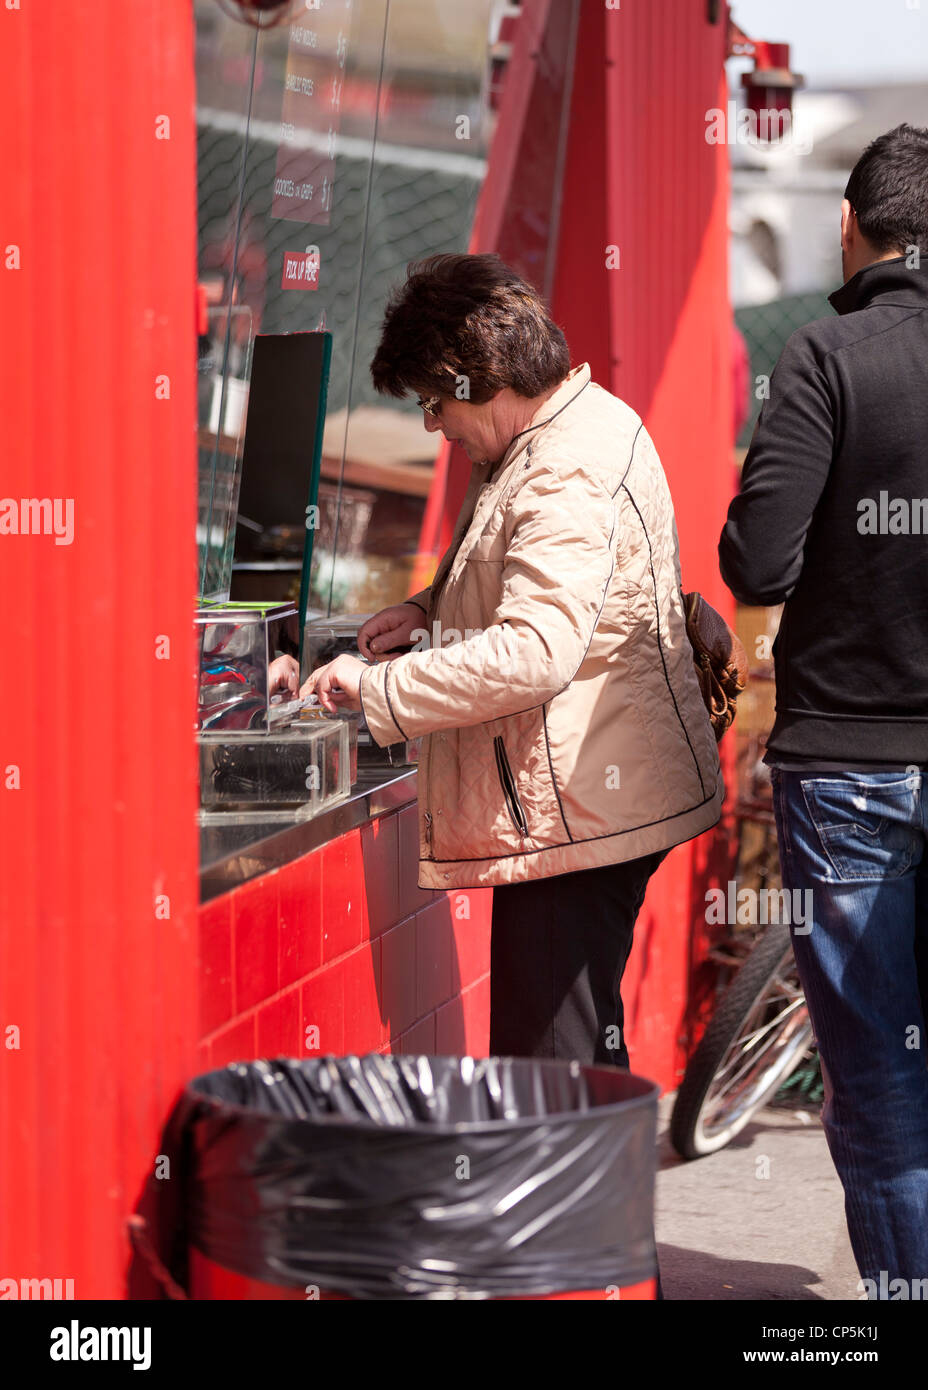 Woman at a ticket window - Stock Image